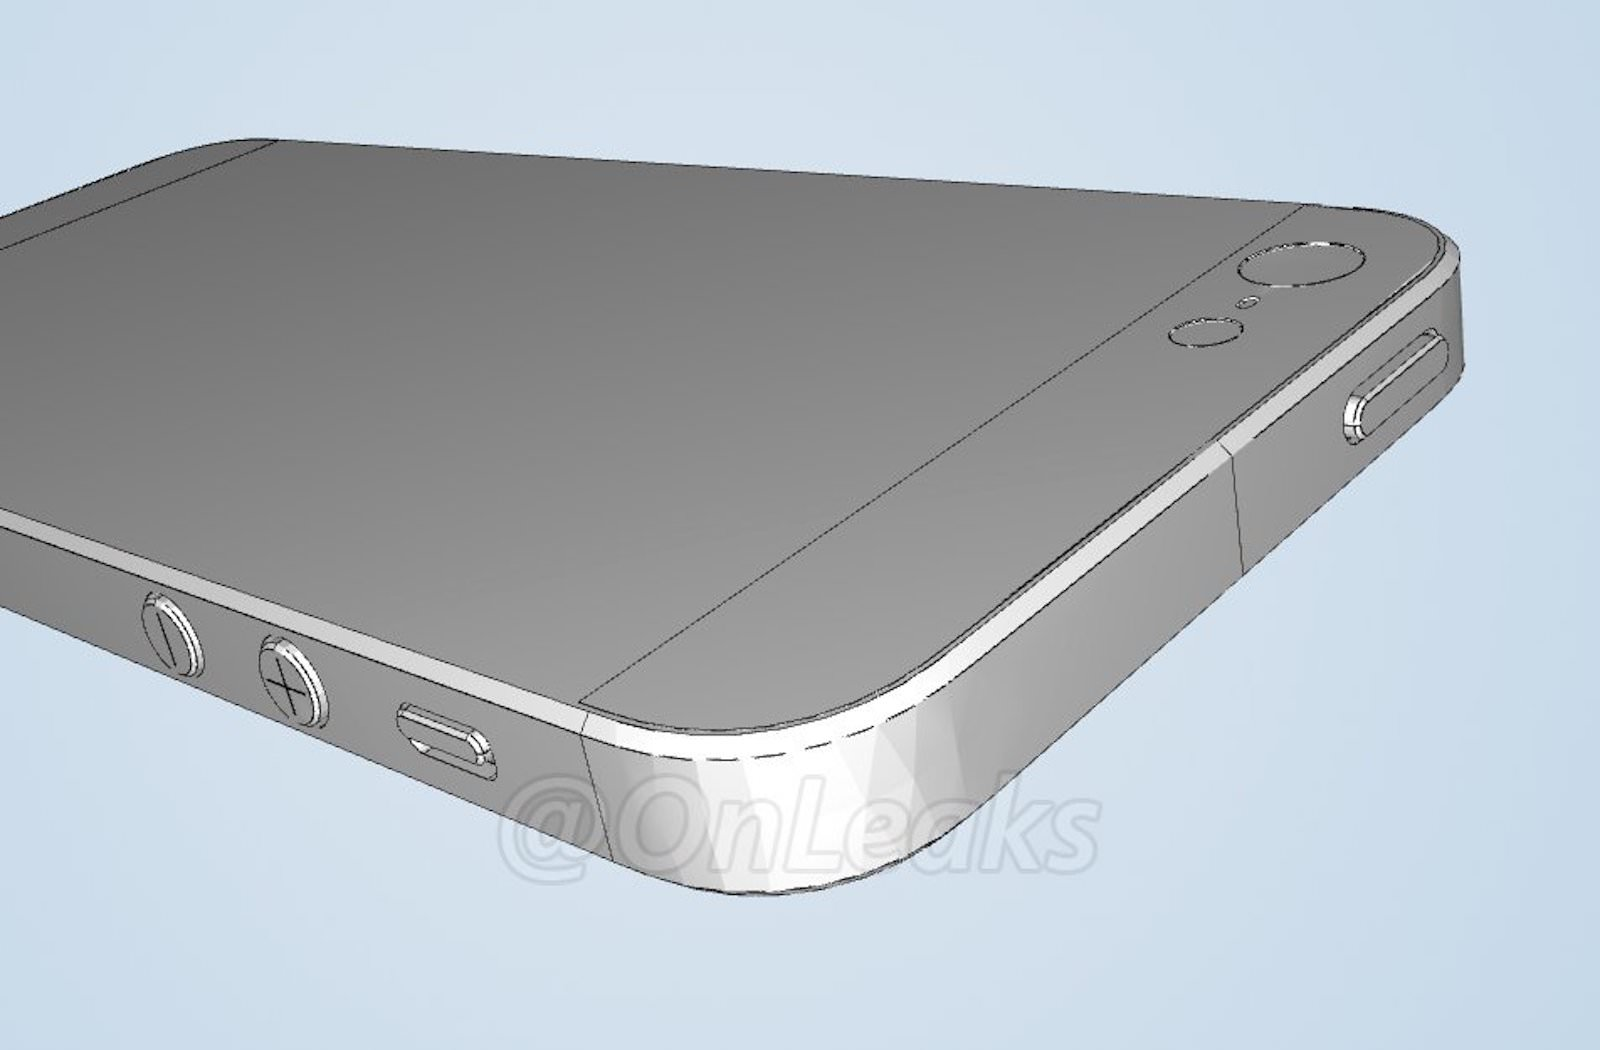 Iphone se 2018 cad images 2